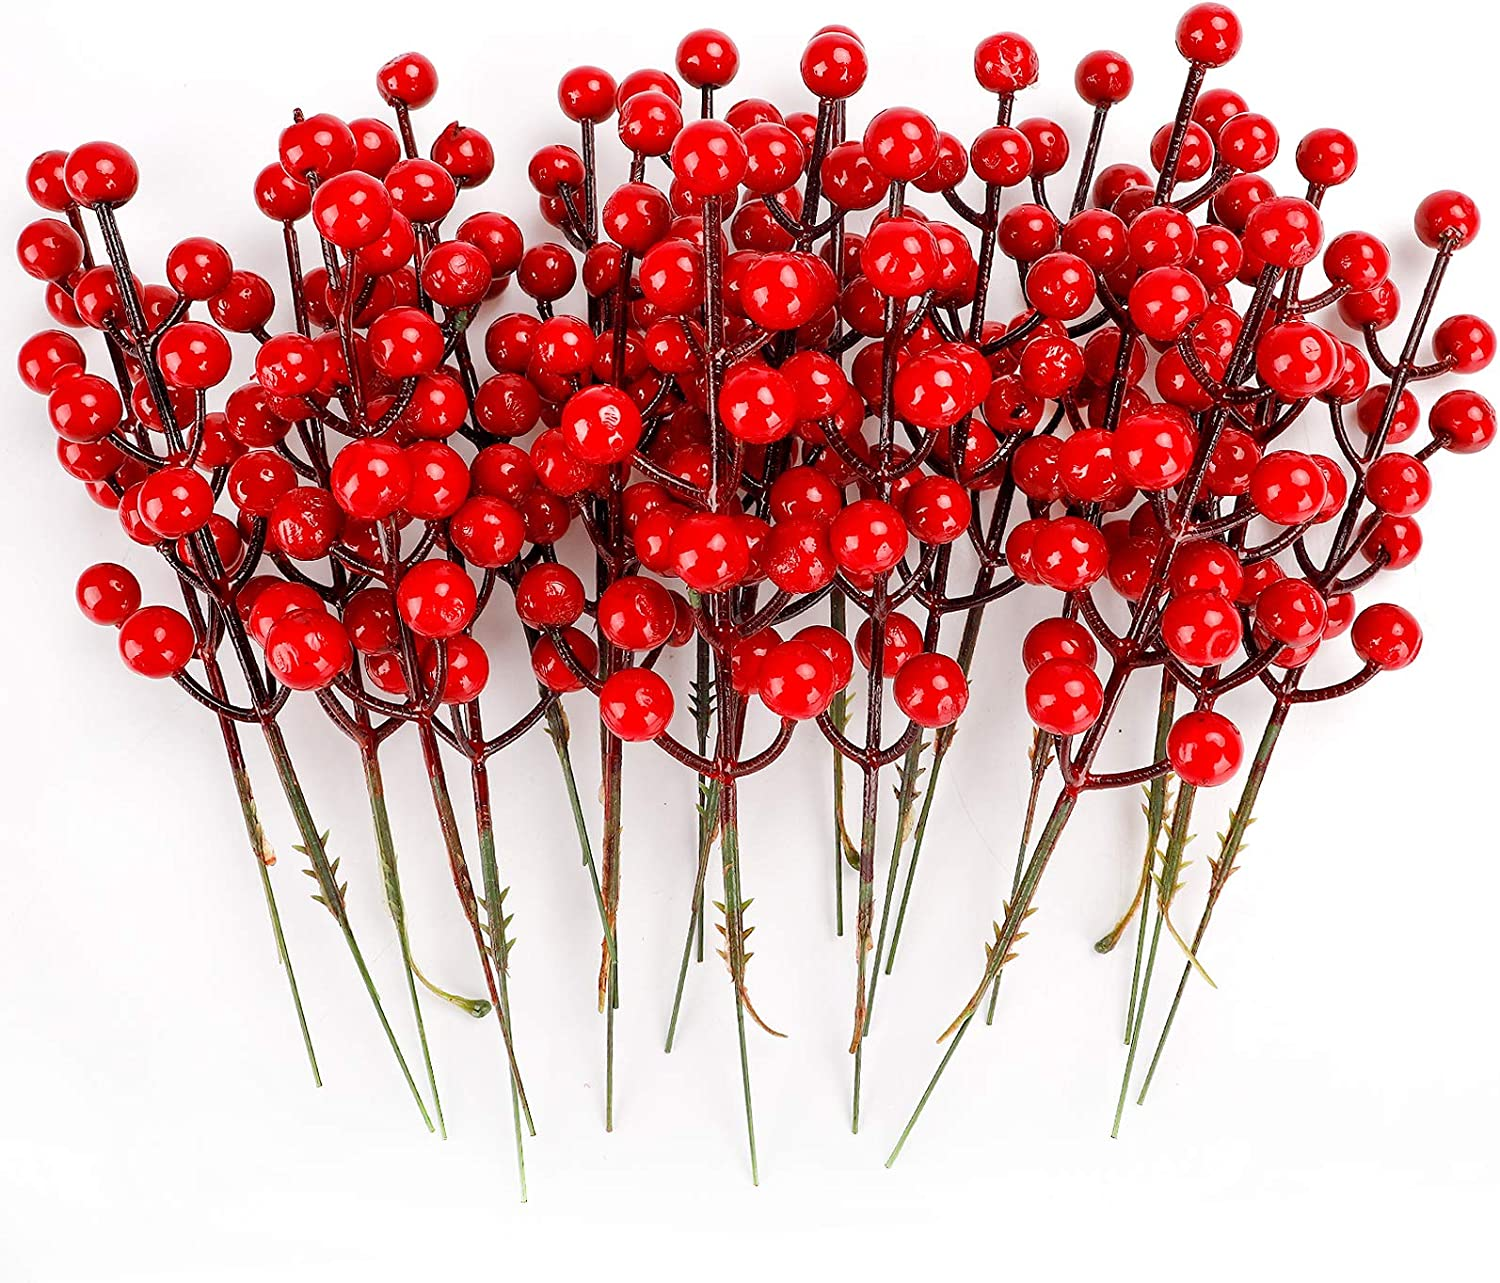 TELDRASSIL 46-Pack Red Christmas Berries Stem Artificial Holly Berry Stem for Christmas Tree Decorations, Crafts, Holiday and Home Decor